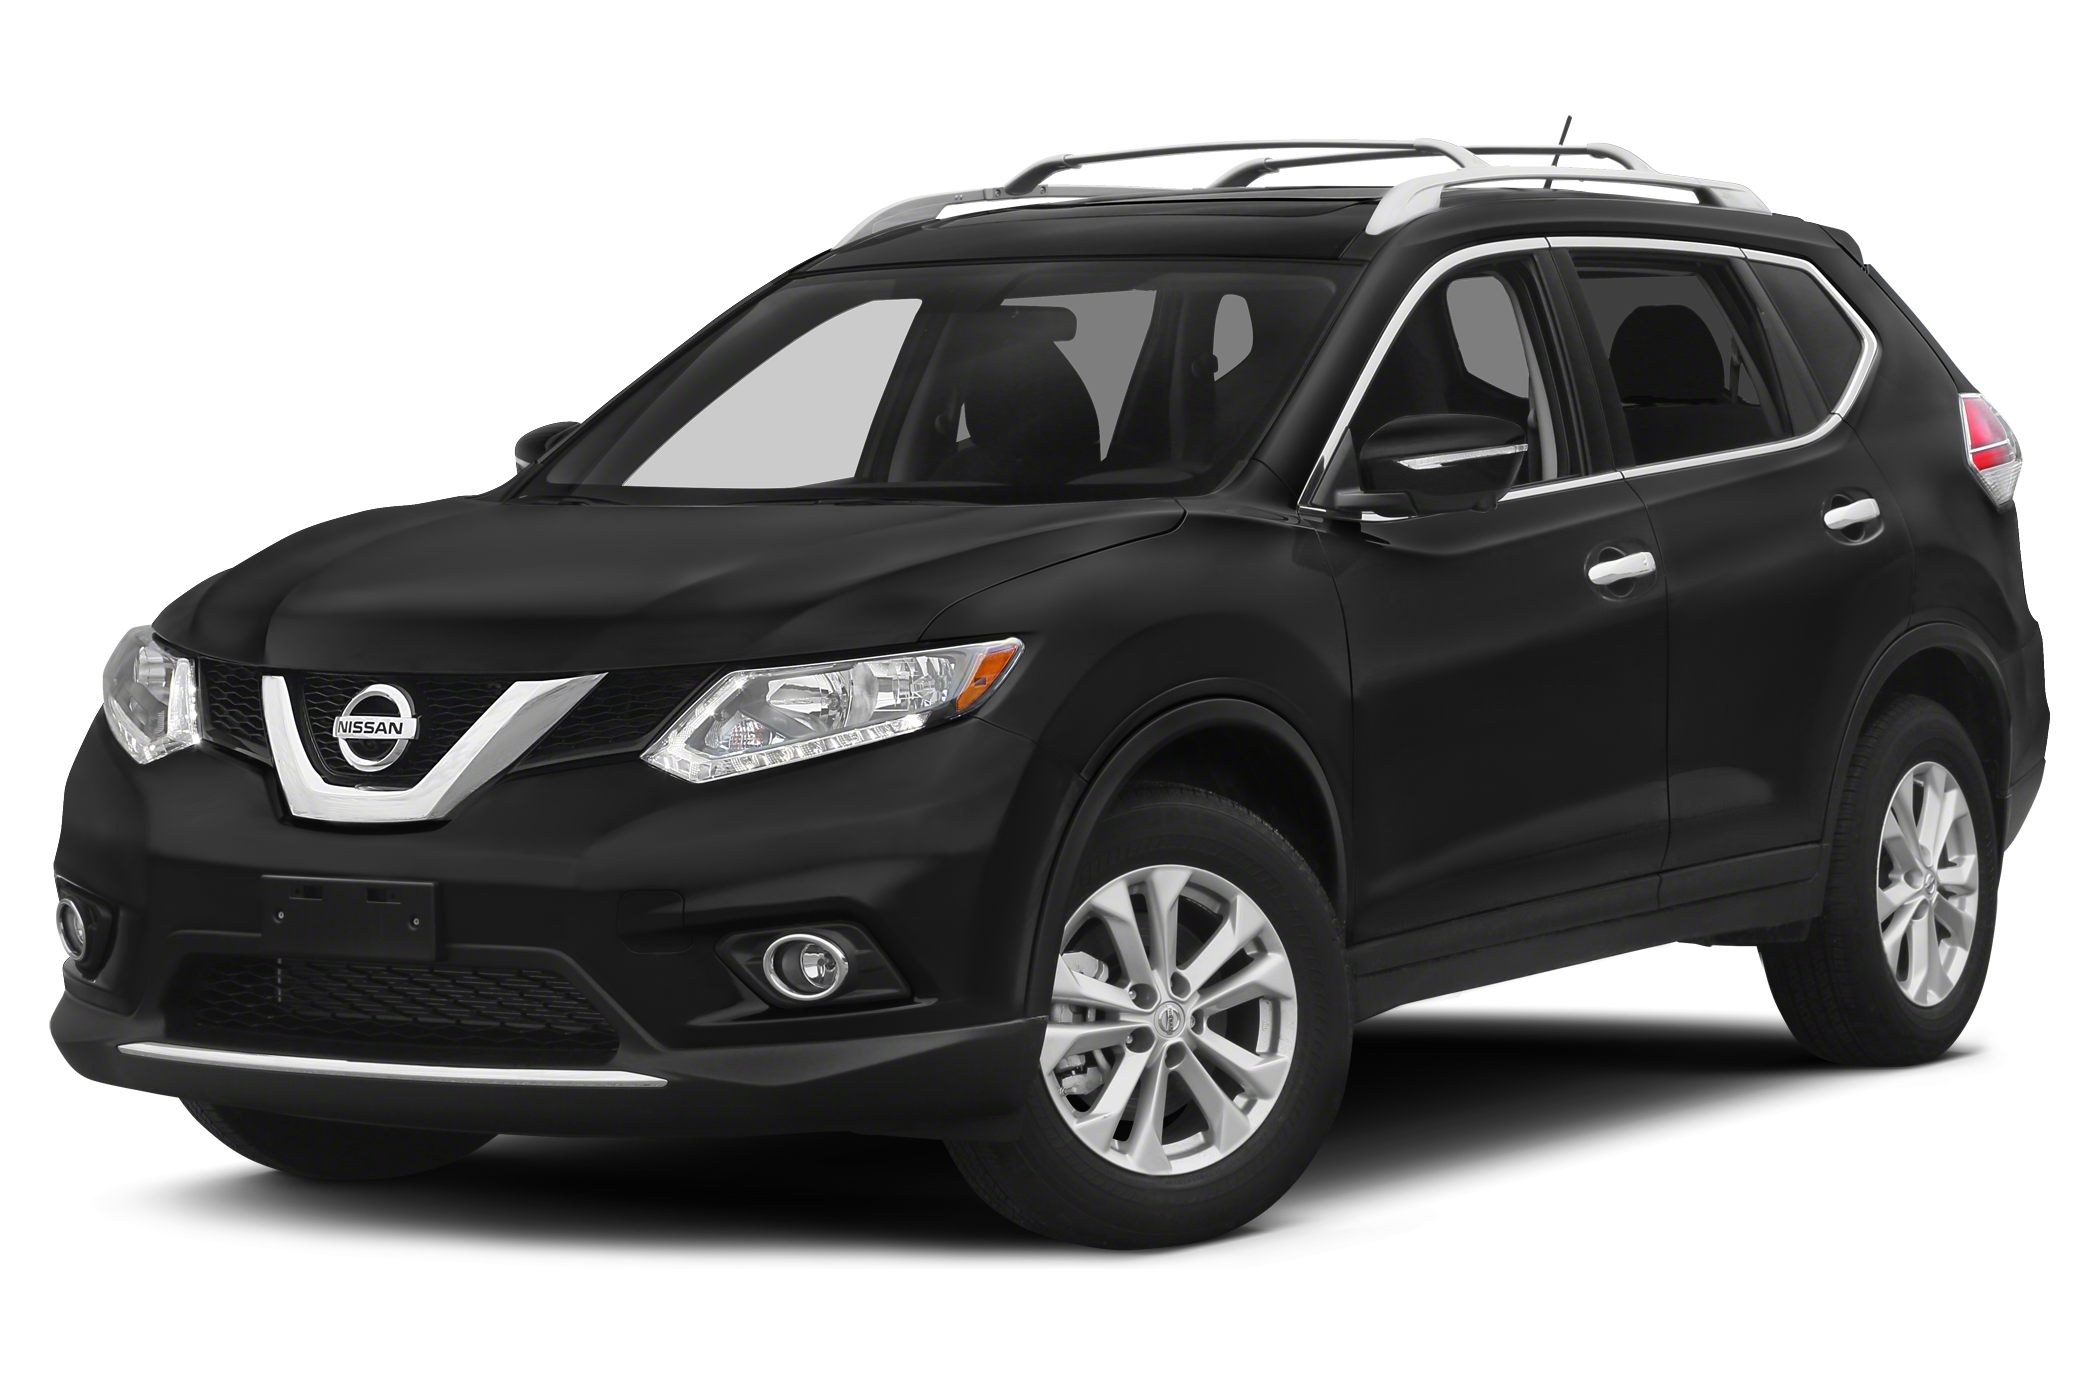 2015 Nissan Rogue SV SUV for sale in Tacoma for $29,625 with 0 miles